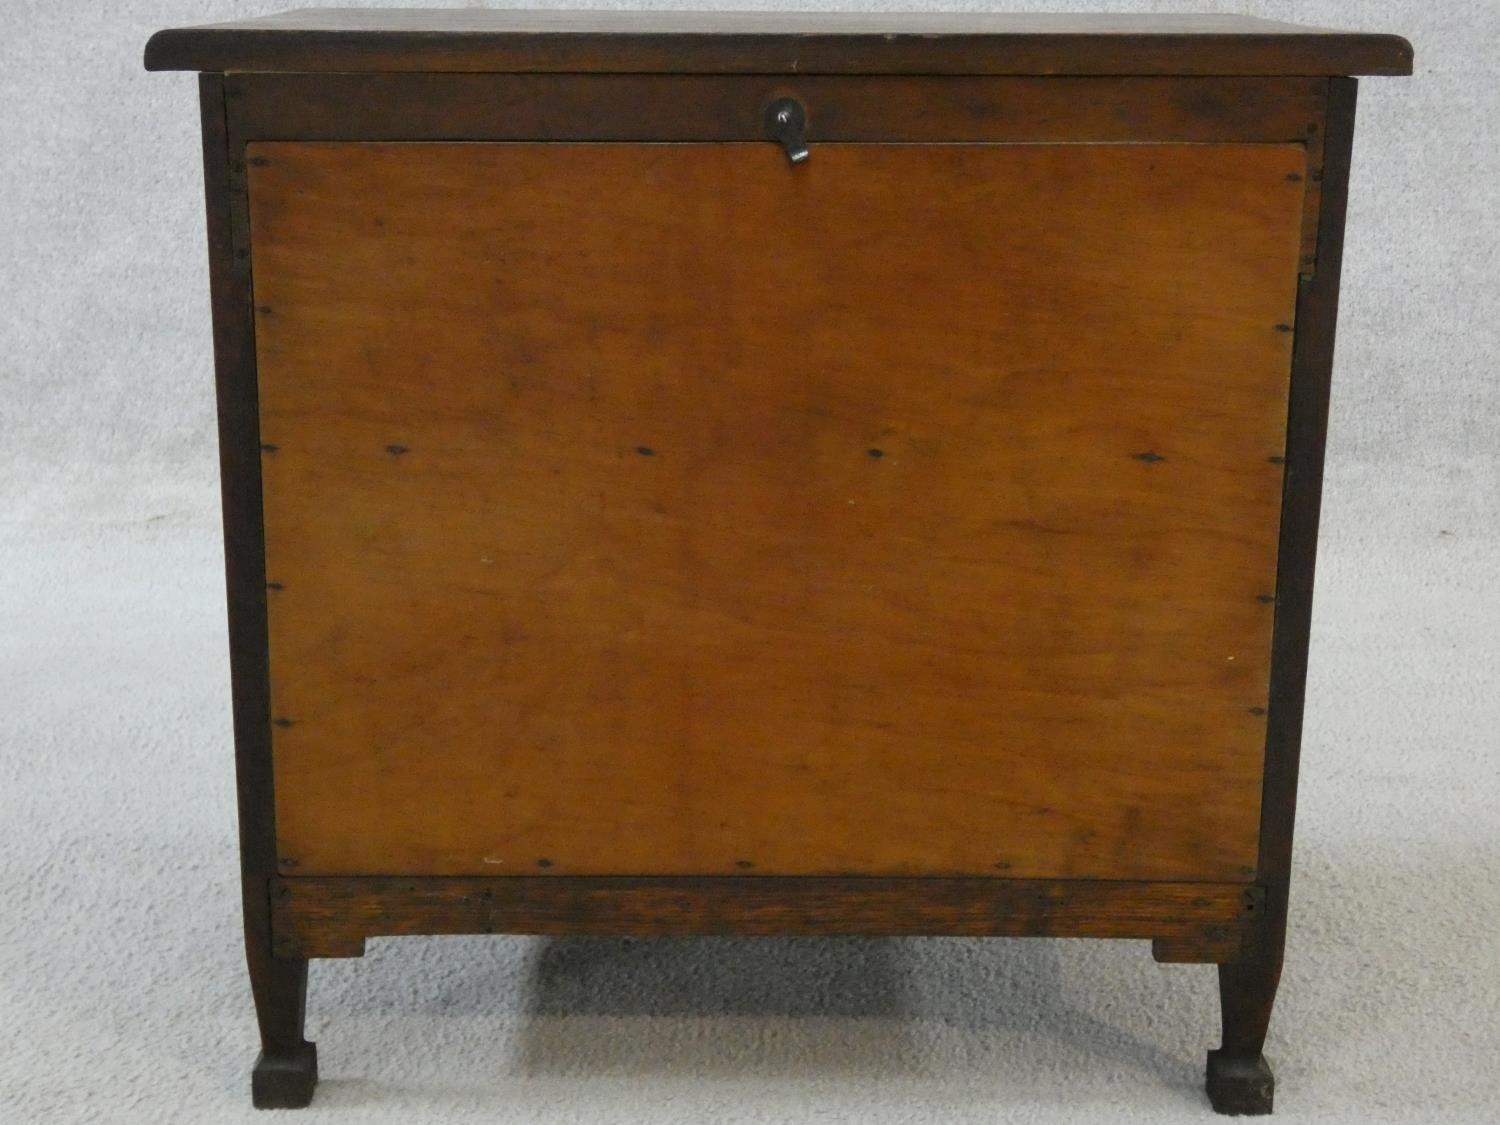 An early 20th century country oak style side cabinet with carved panel doors on squat square - Image 11 of 14